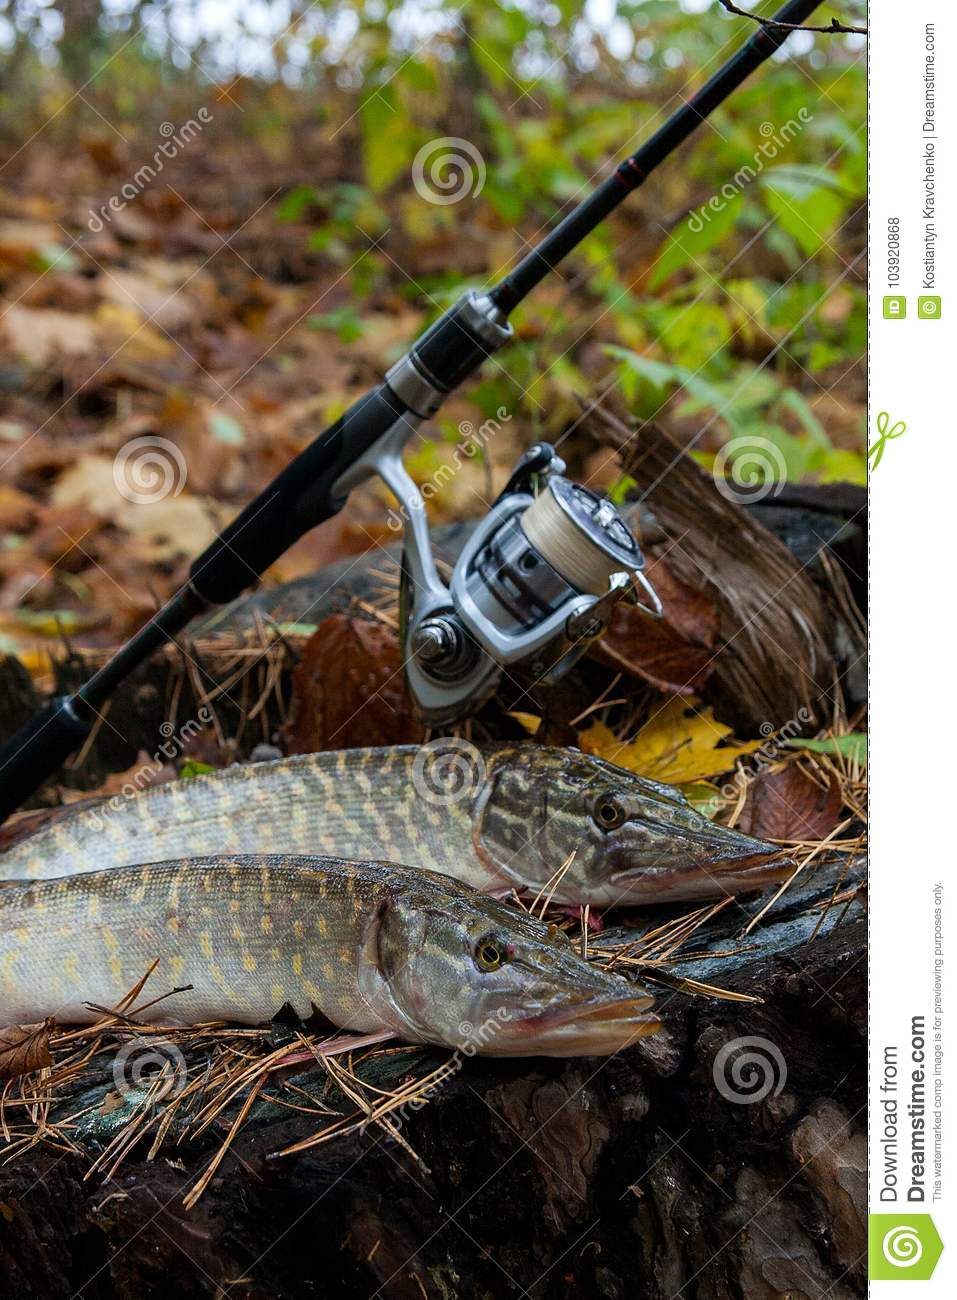 Freshwater pike fish lies on a wooden hemp and fishing rod with